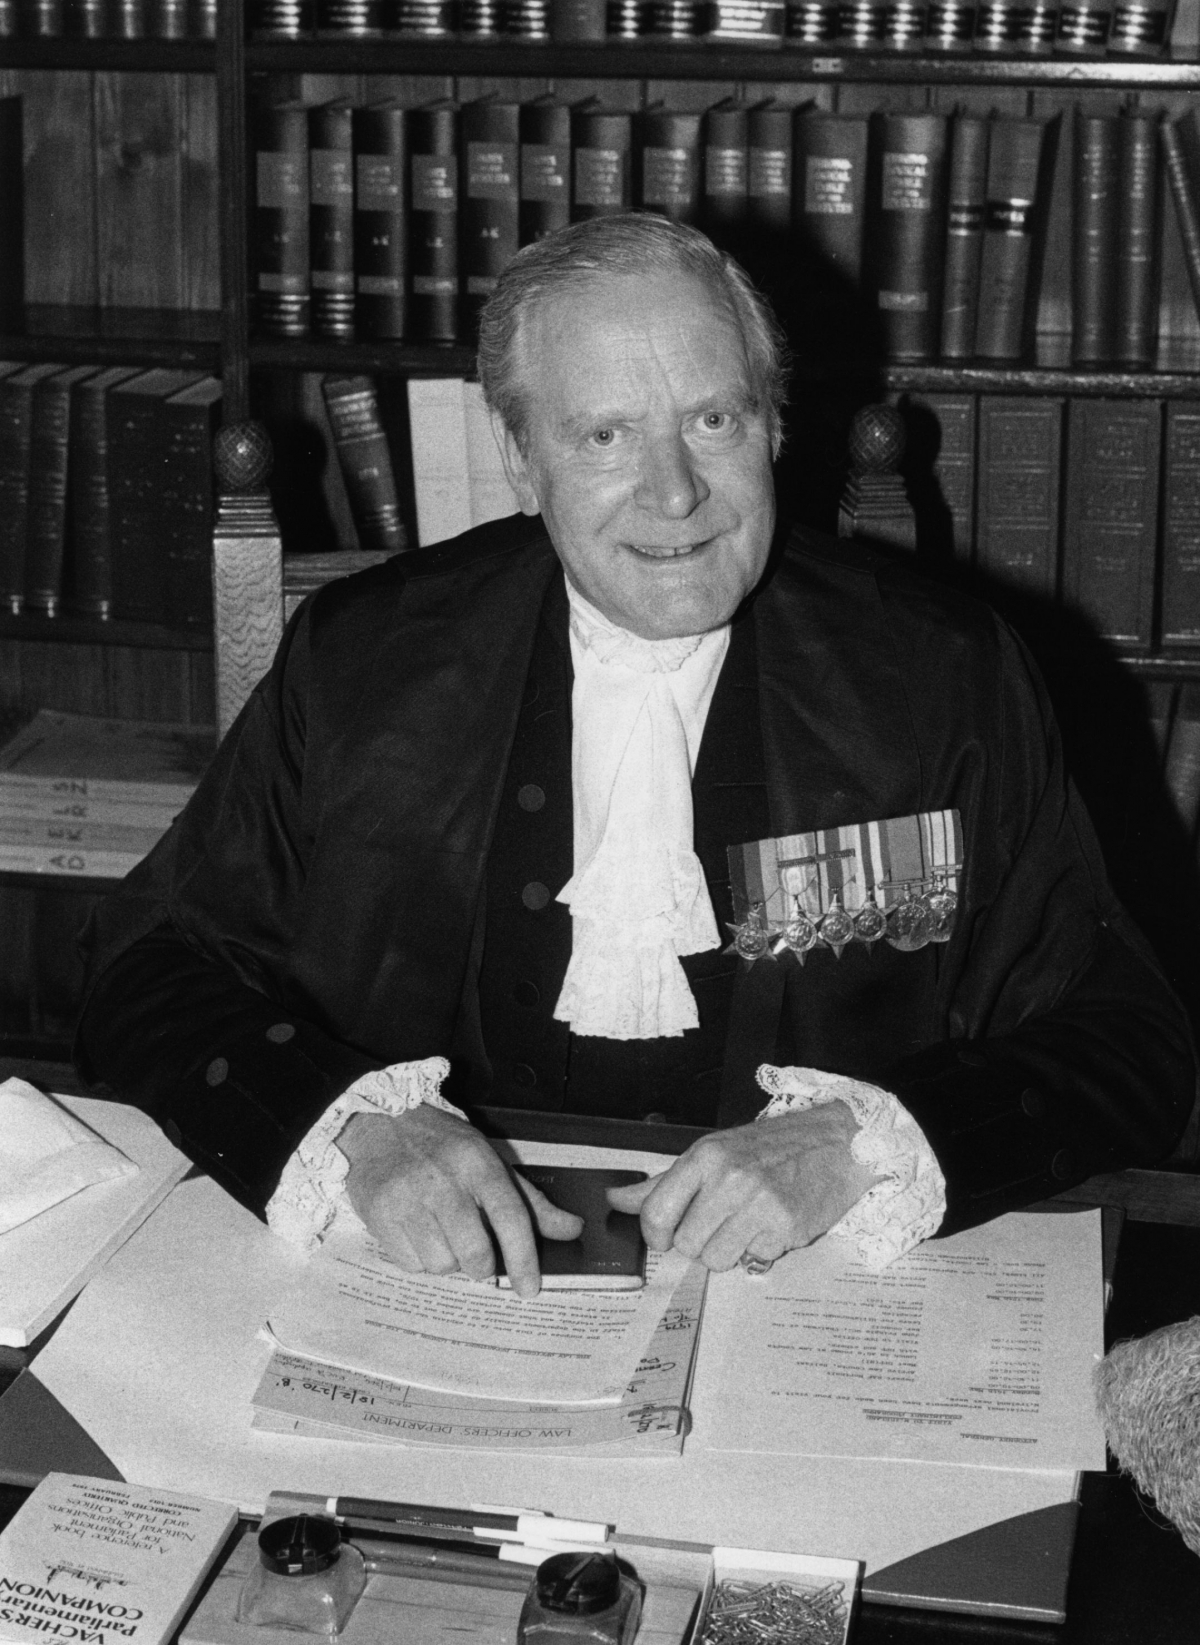 Sir Michael Havers, who died in 1992, was the Attorney General for England and Wales from 1979-1987